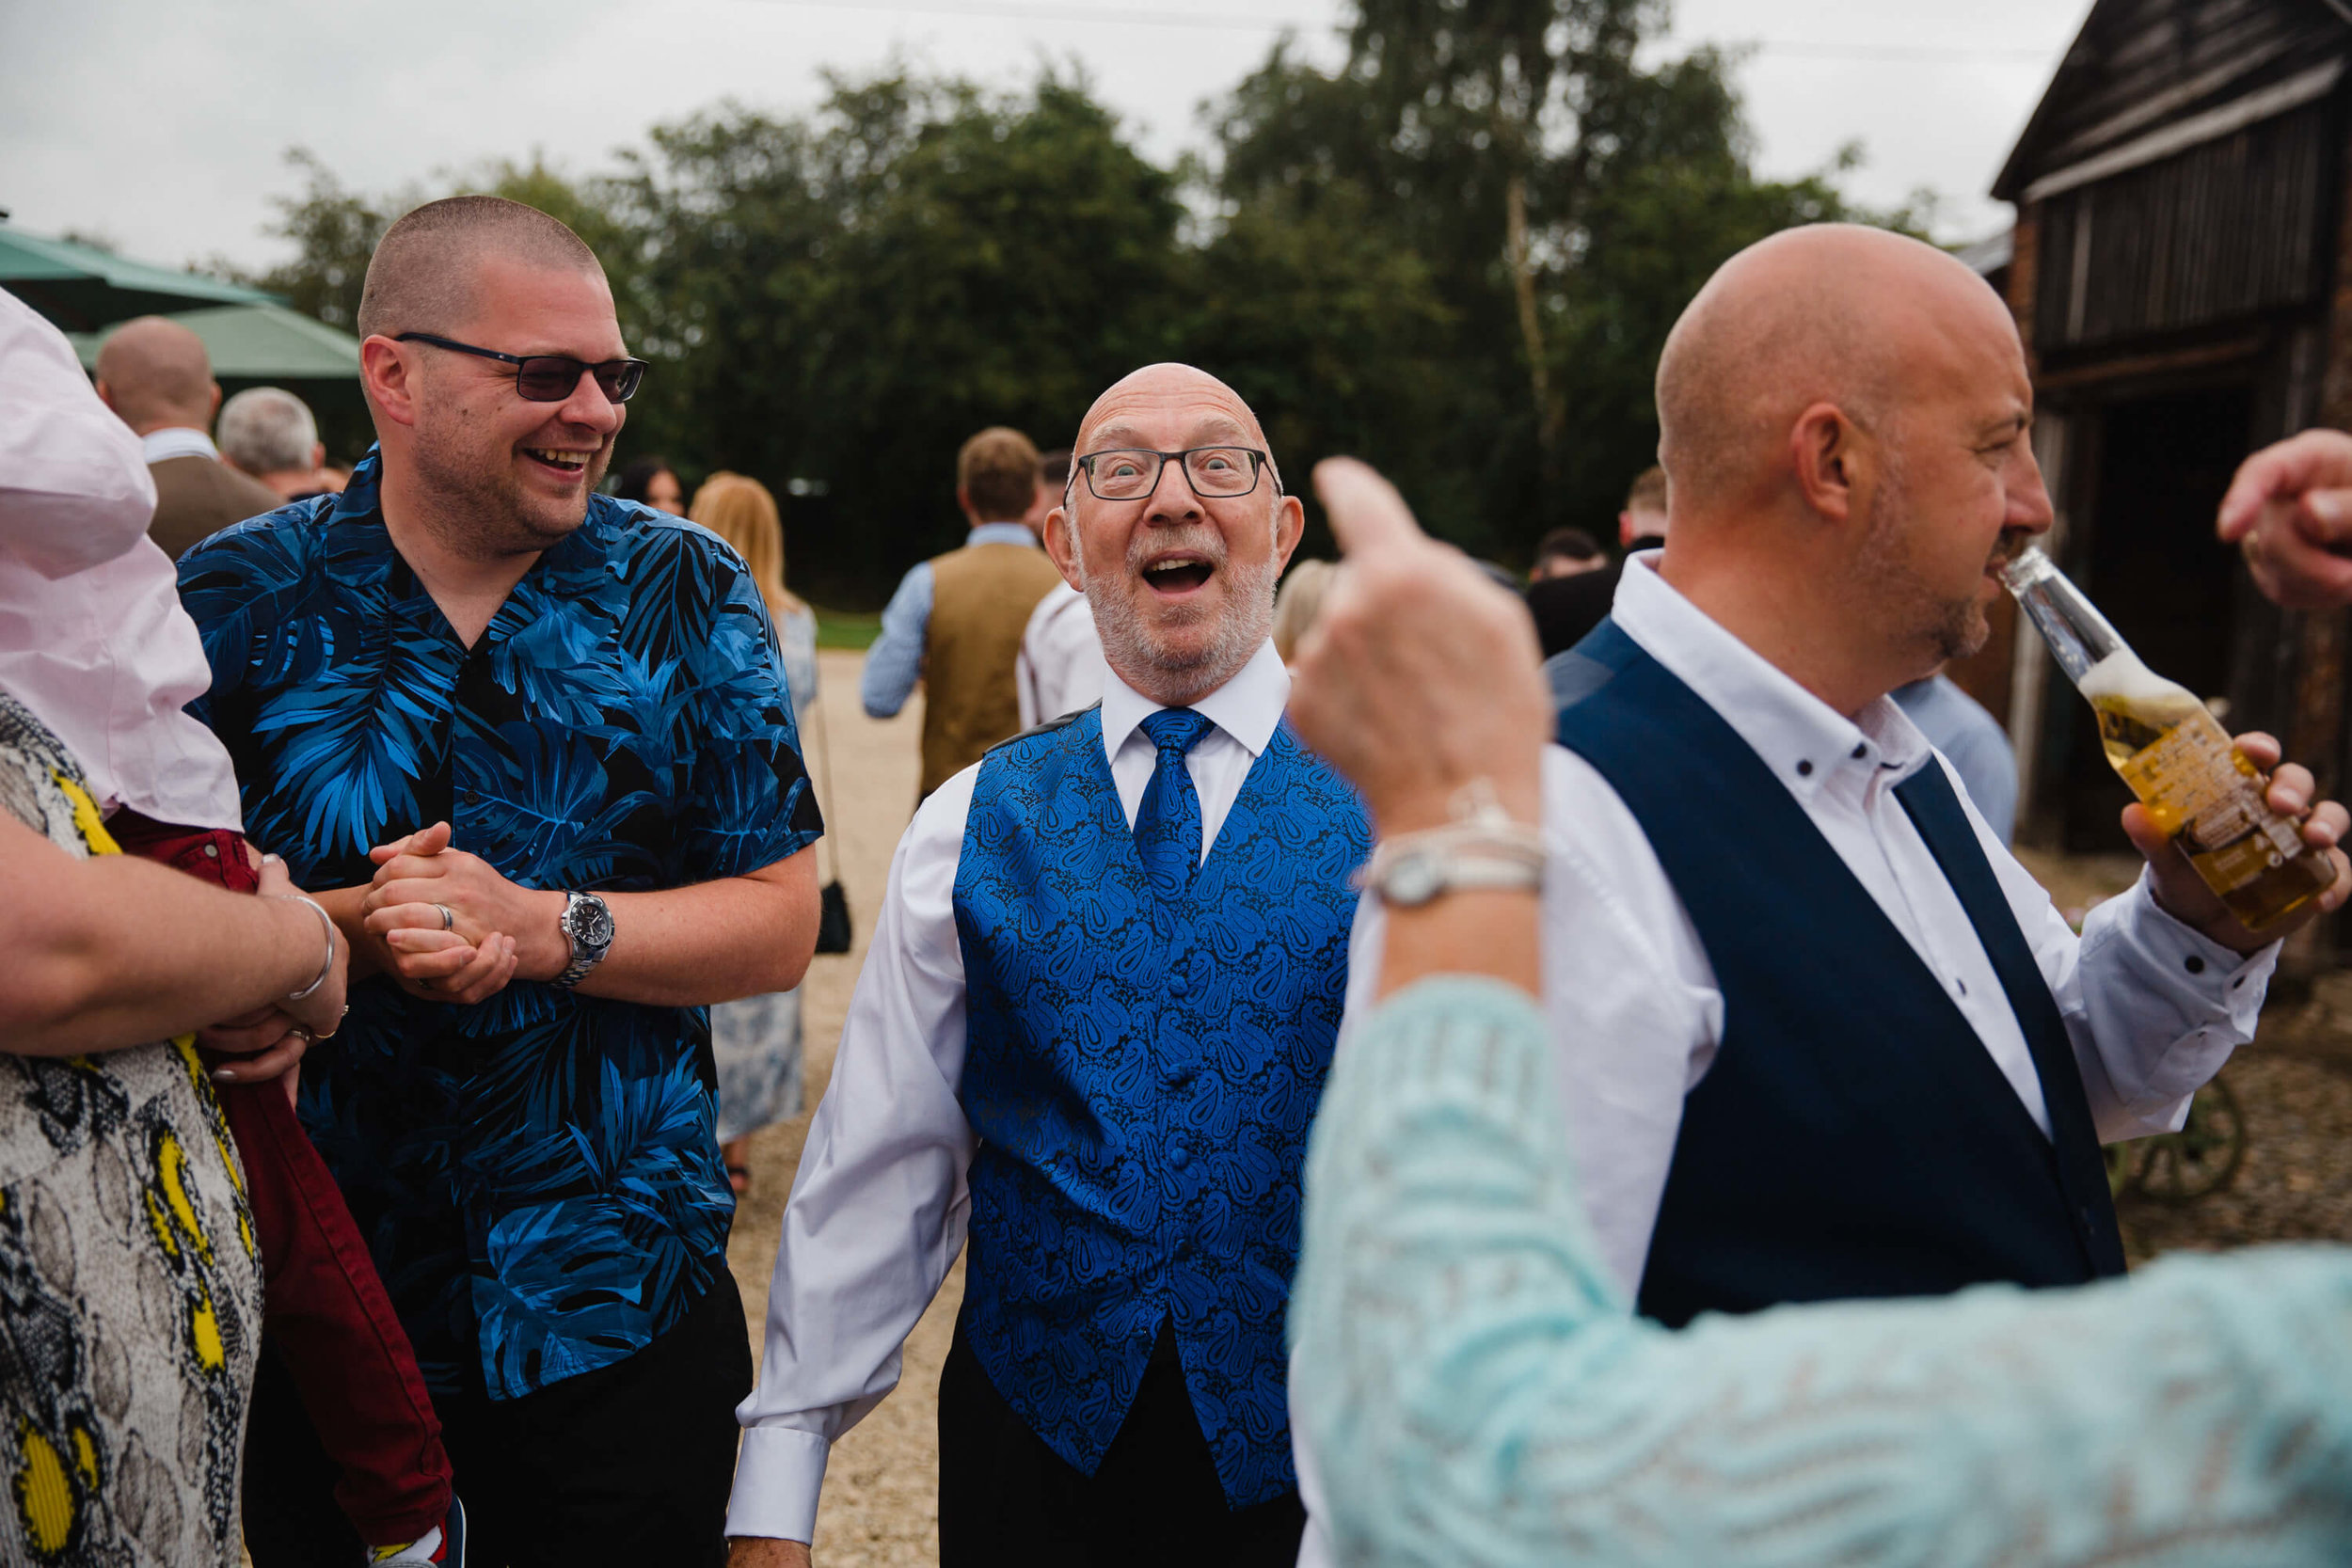 natural relaxed funny moment as wedding guest is pointed at